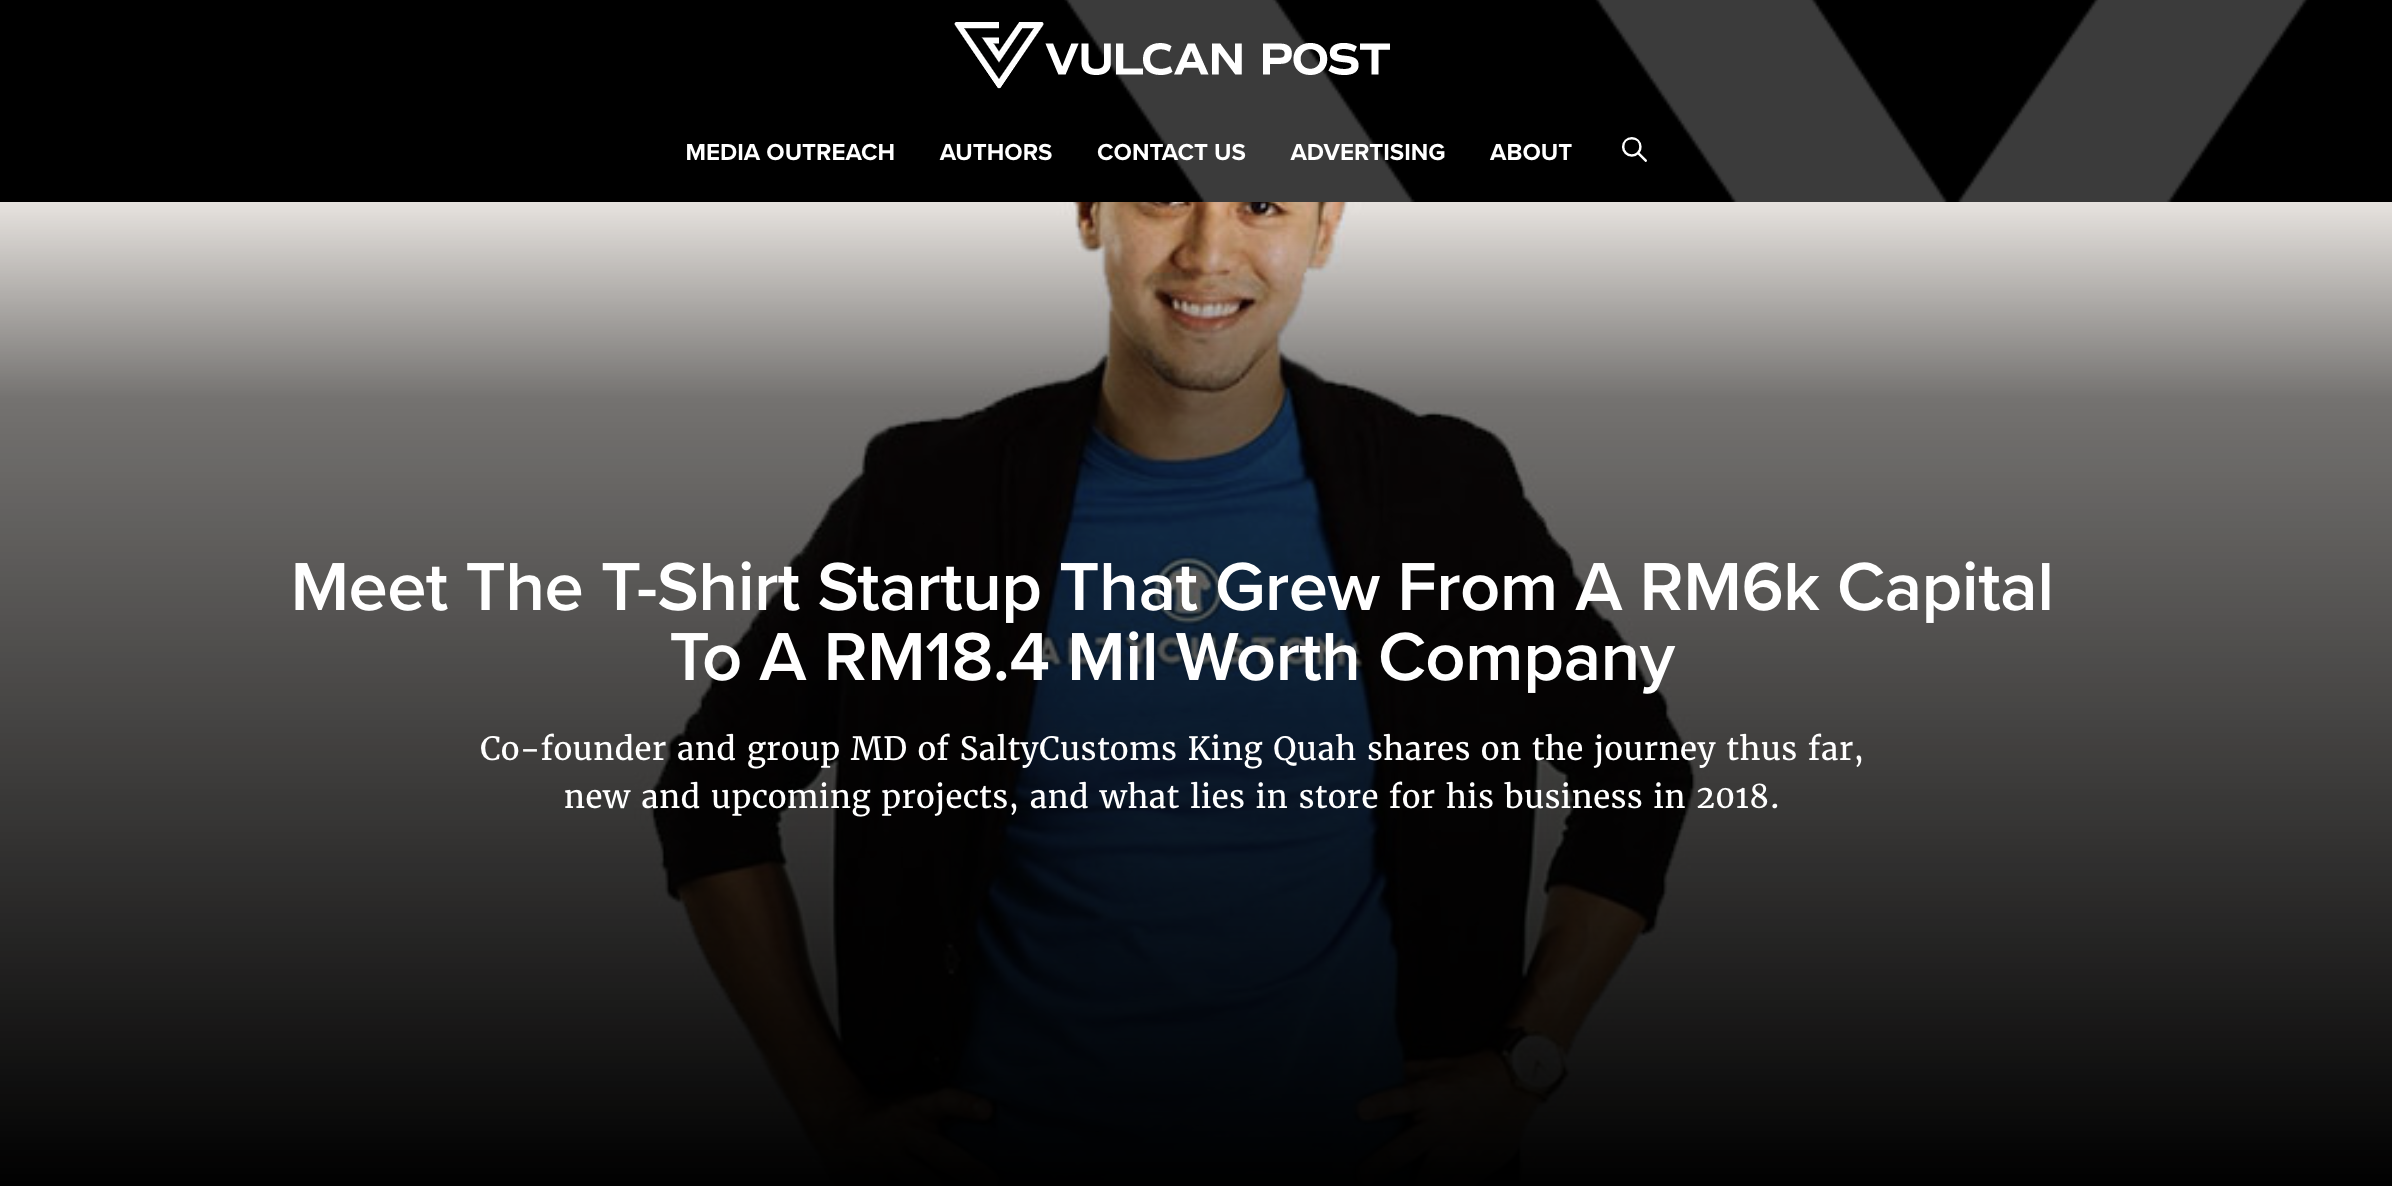 The Tshirt Startup That Grew From RM 6k Capital to RM 18.4 Mil Worth Company